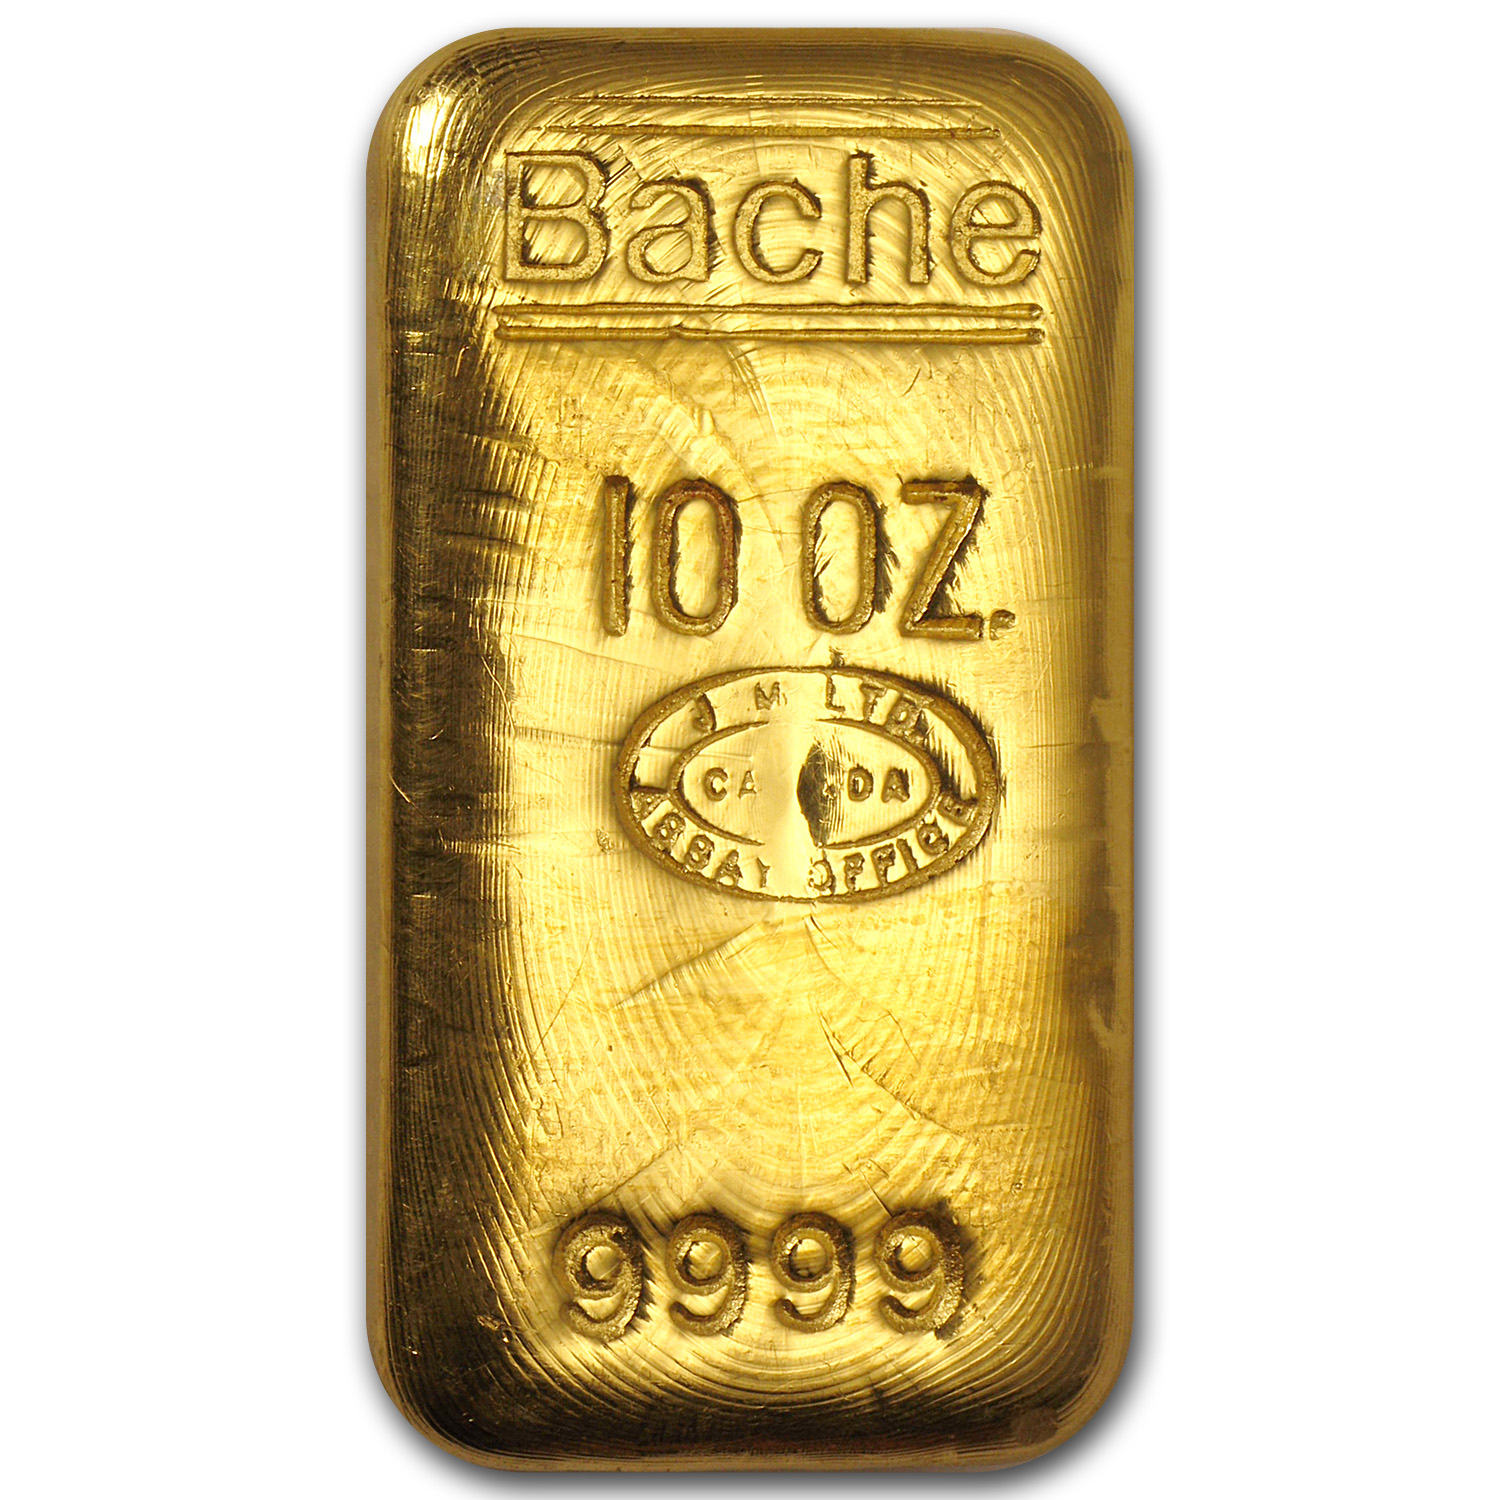 10 oz Gold Bar - Johnson Matthey (Loaf-Style, Bache)